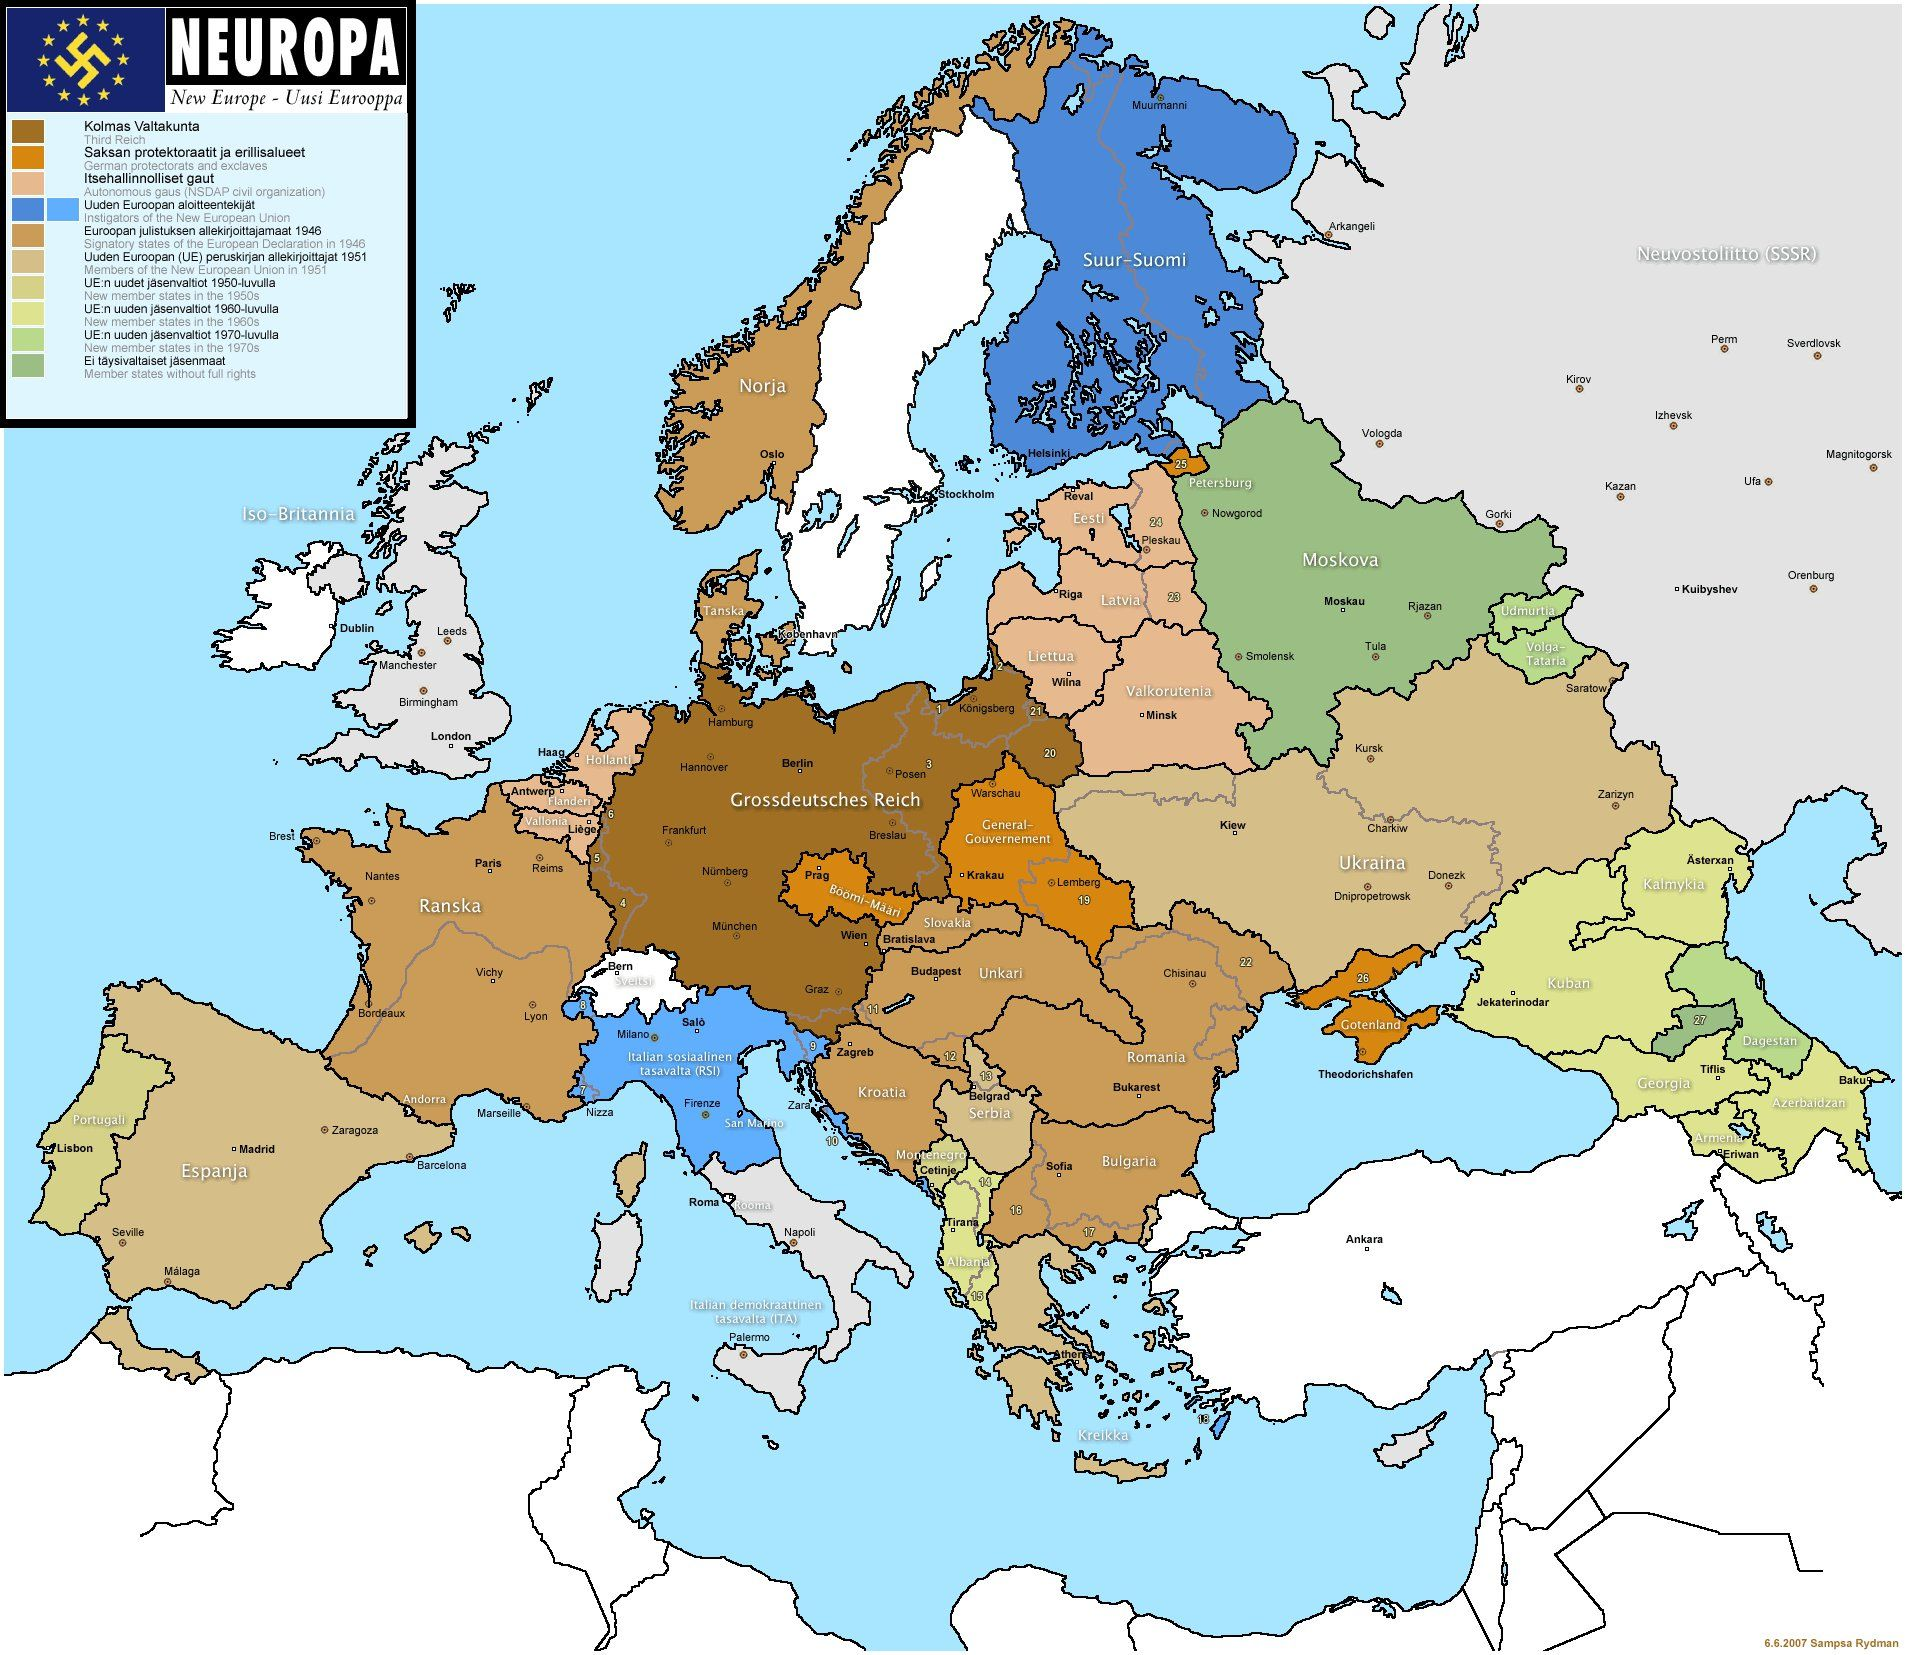 Neuropa The World According To Pinterest History - Map of europe ww2